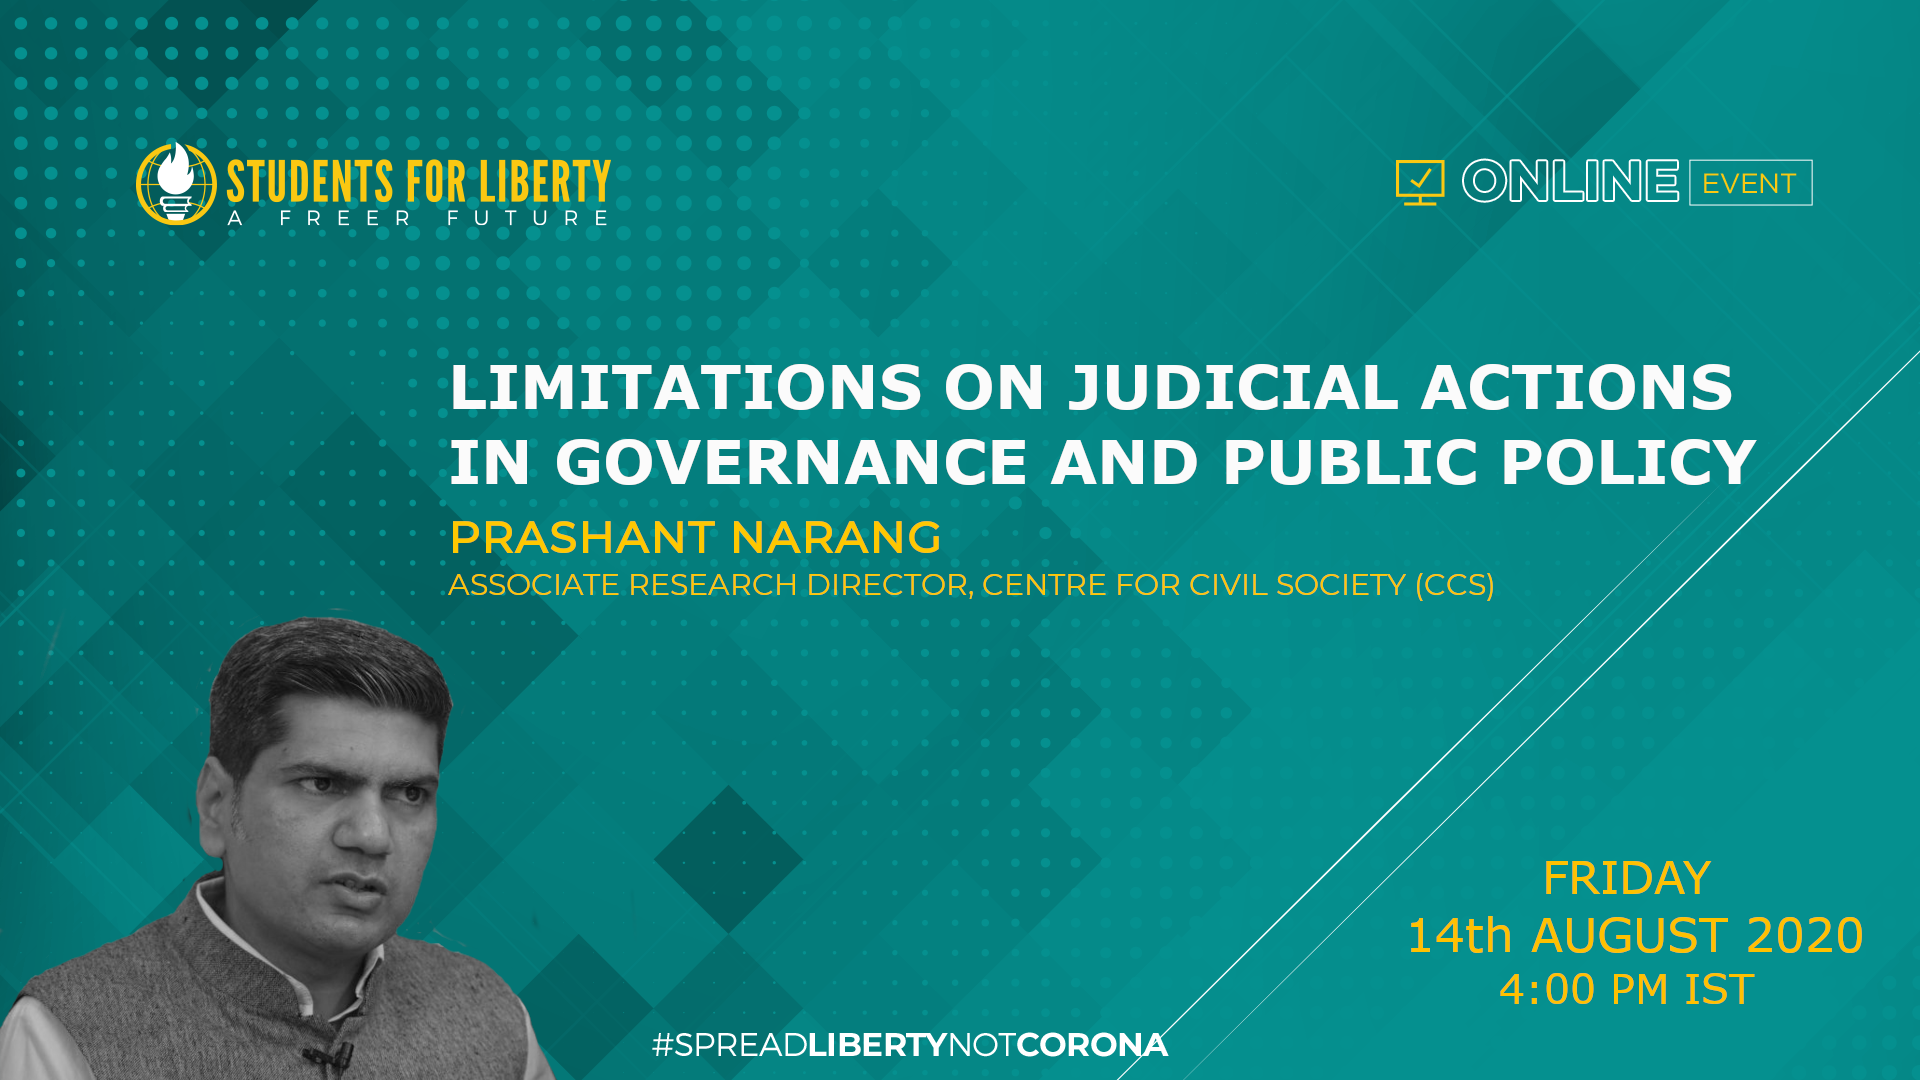 SASFL's Webinar on Limitations on Judicial Action in Governance and Public Policy